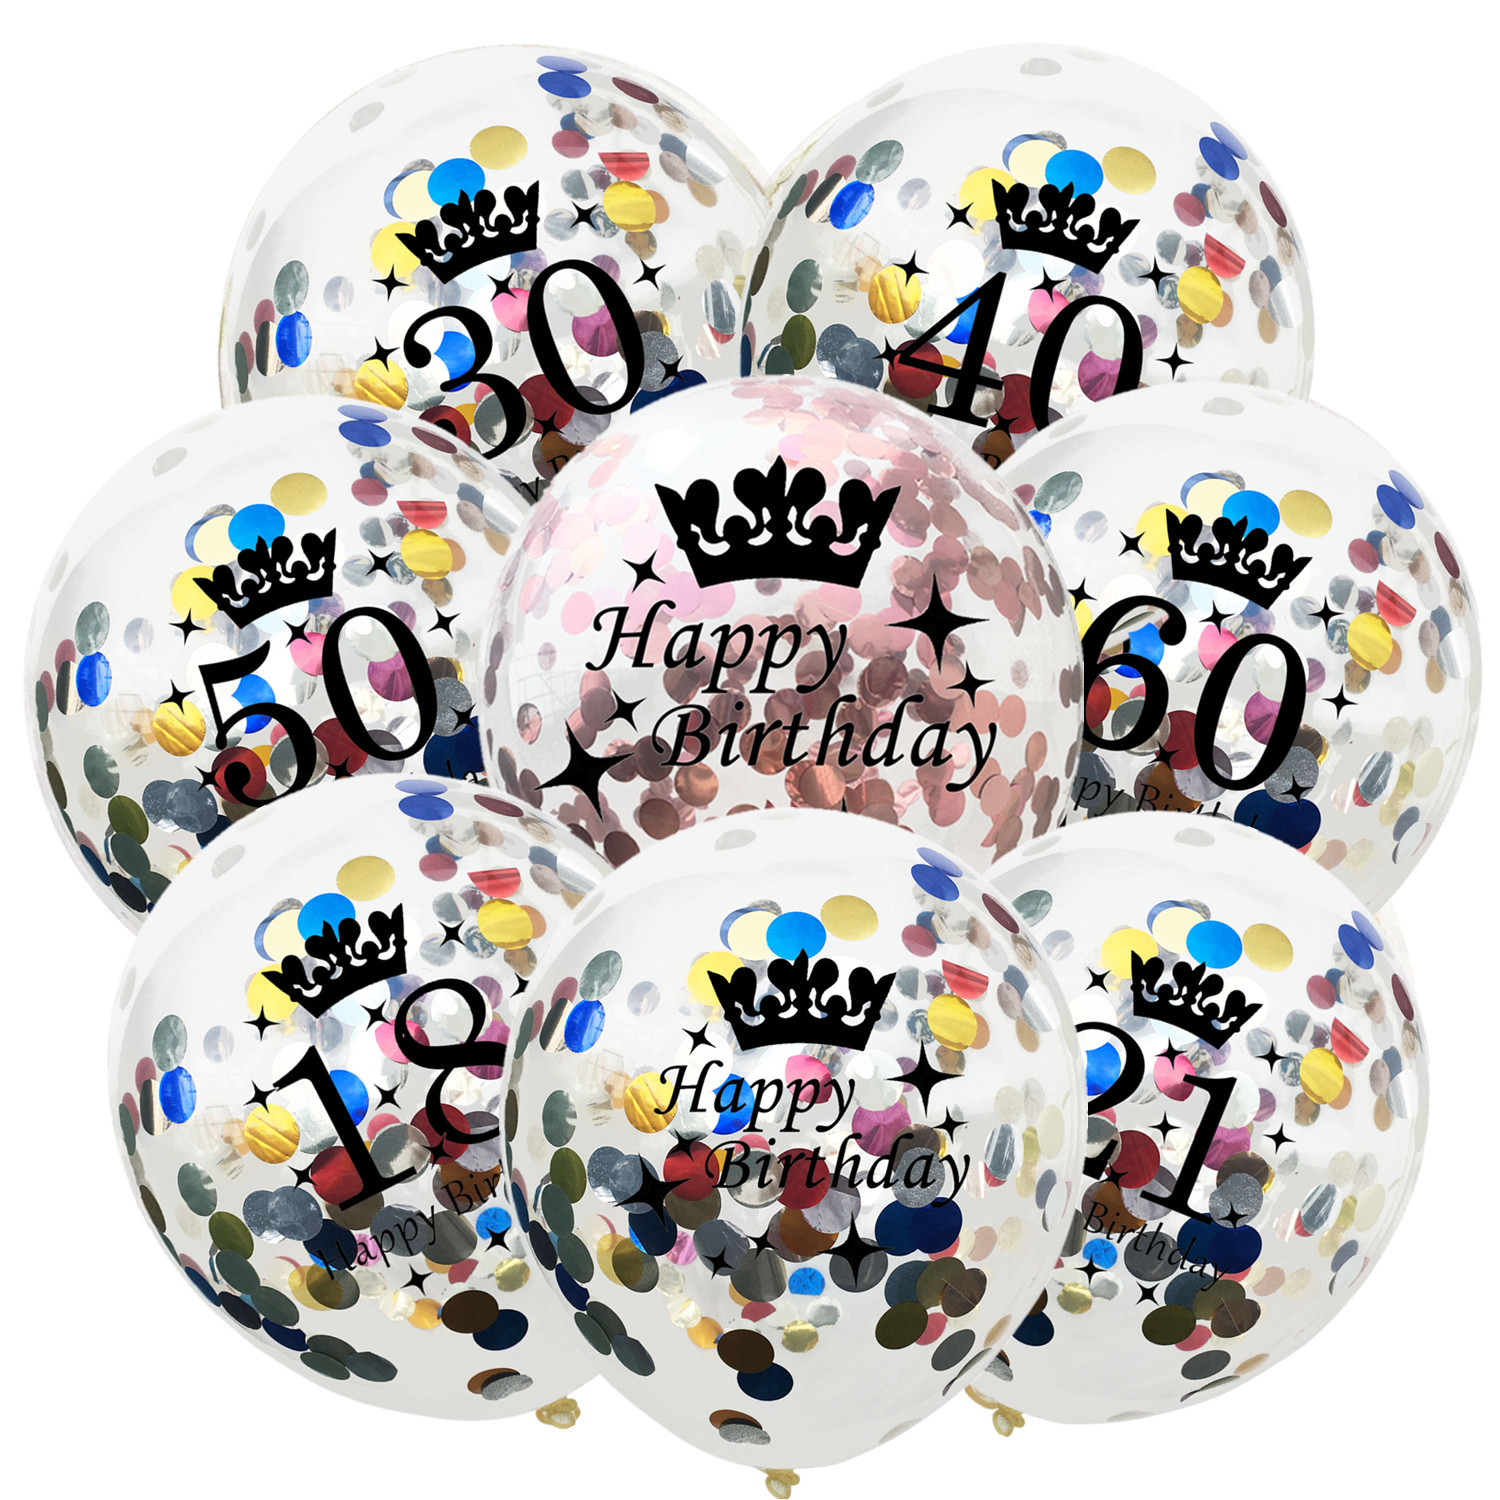 5pcs Multicolor Confetti Clear Latex Balloons 18/21/30/40/<font><b>50</b></font>/60/1st <font><b>Happy</b></font> <font><b>Birthday</b></font> Party Helium Balloon Anniversary Decorations image